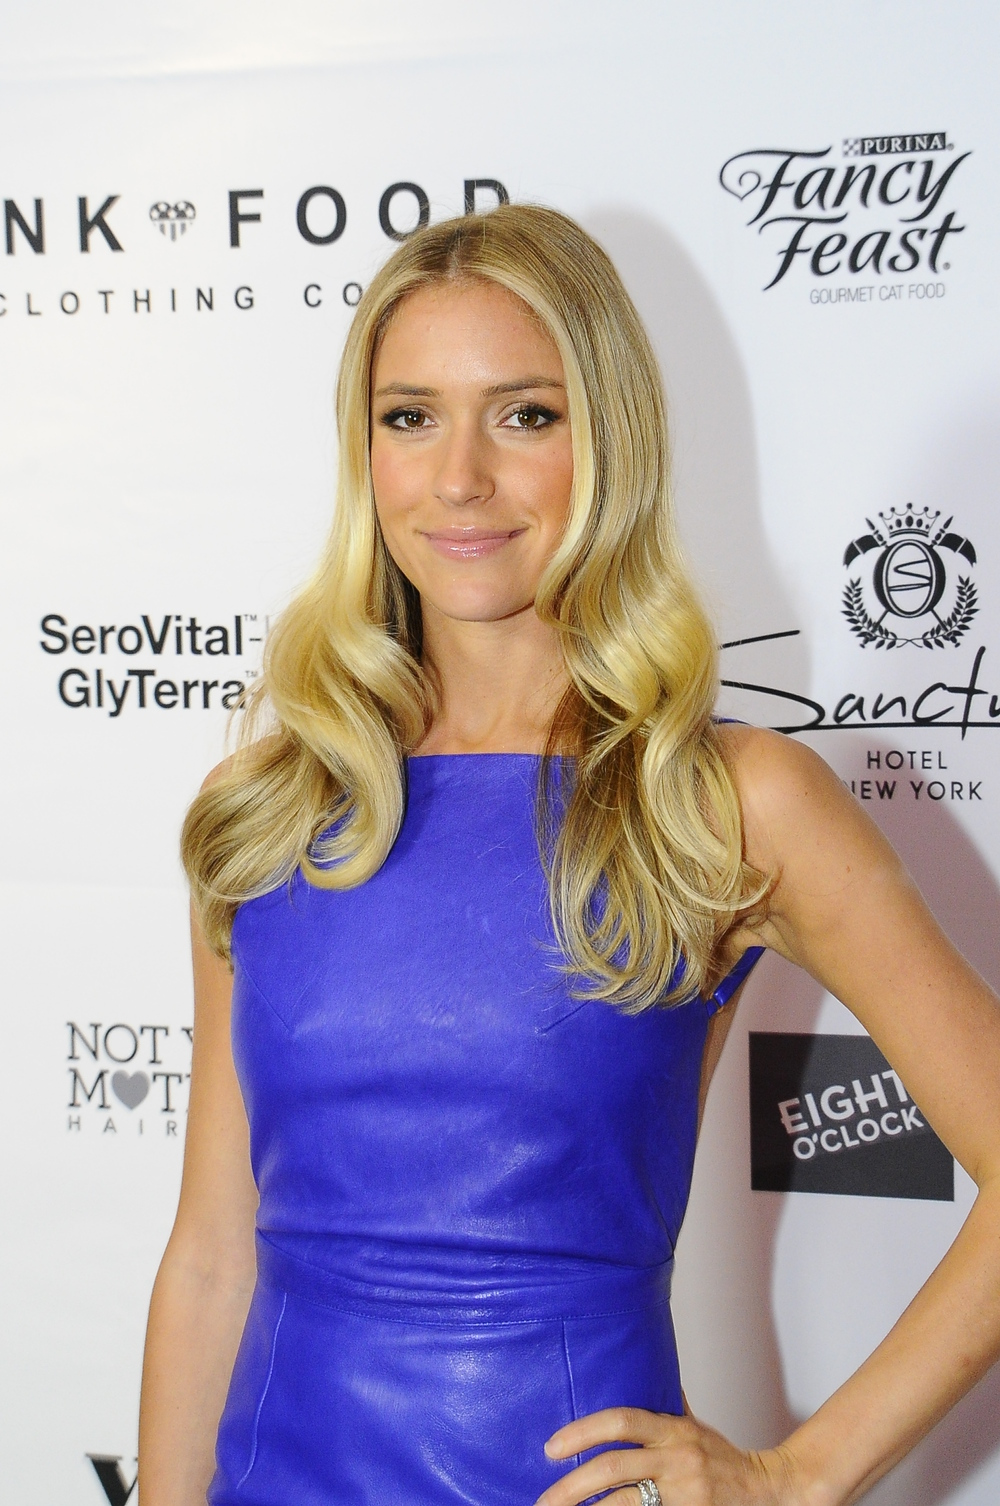 Kristin Cavallari Is Pregnant With Baby Number Two!